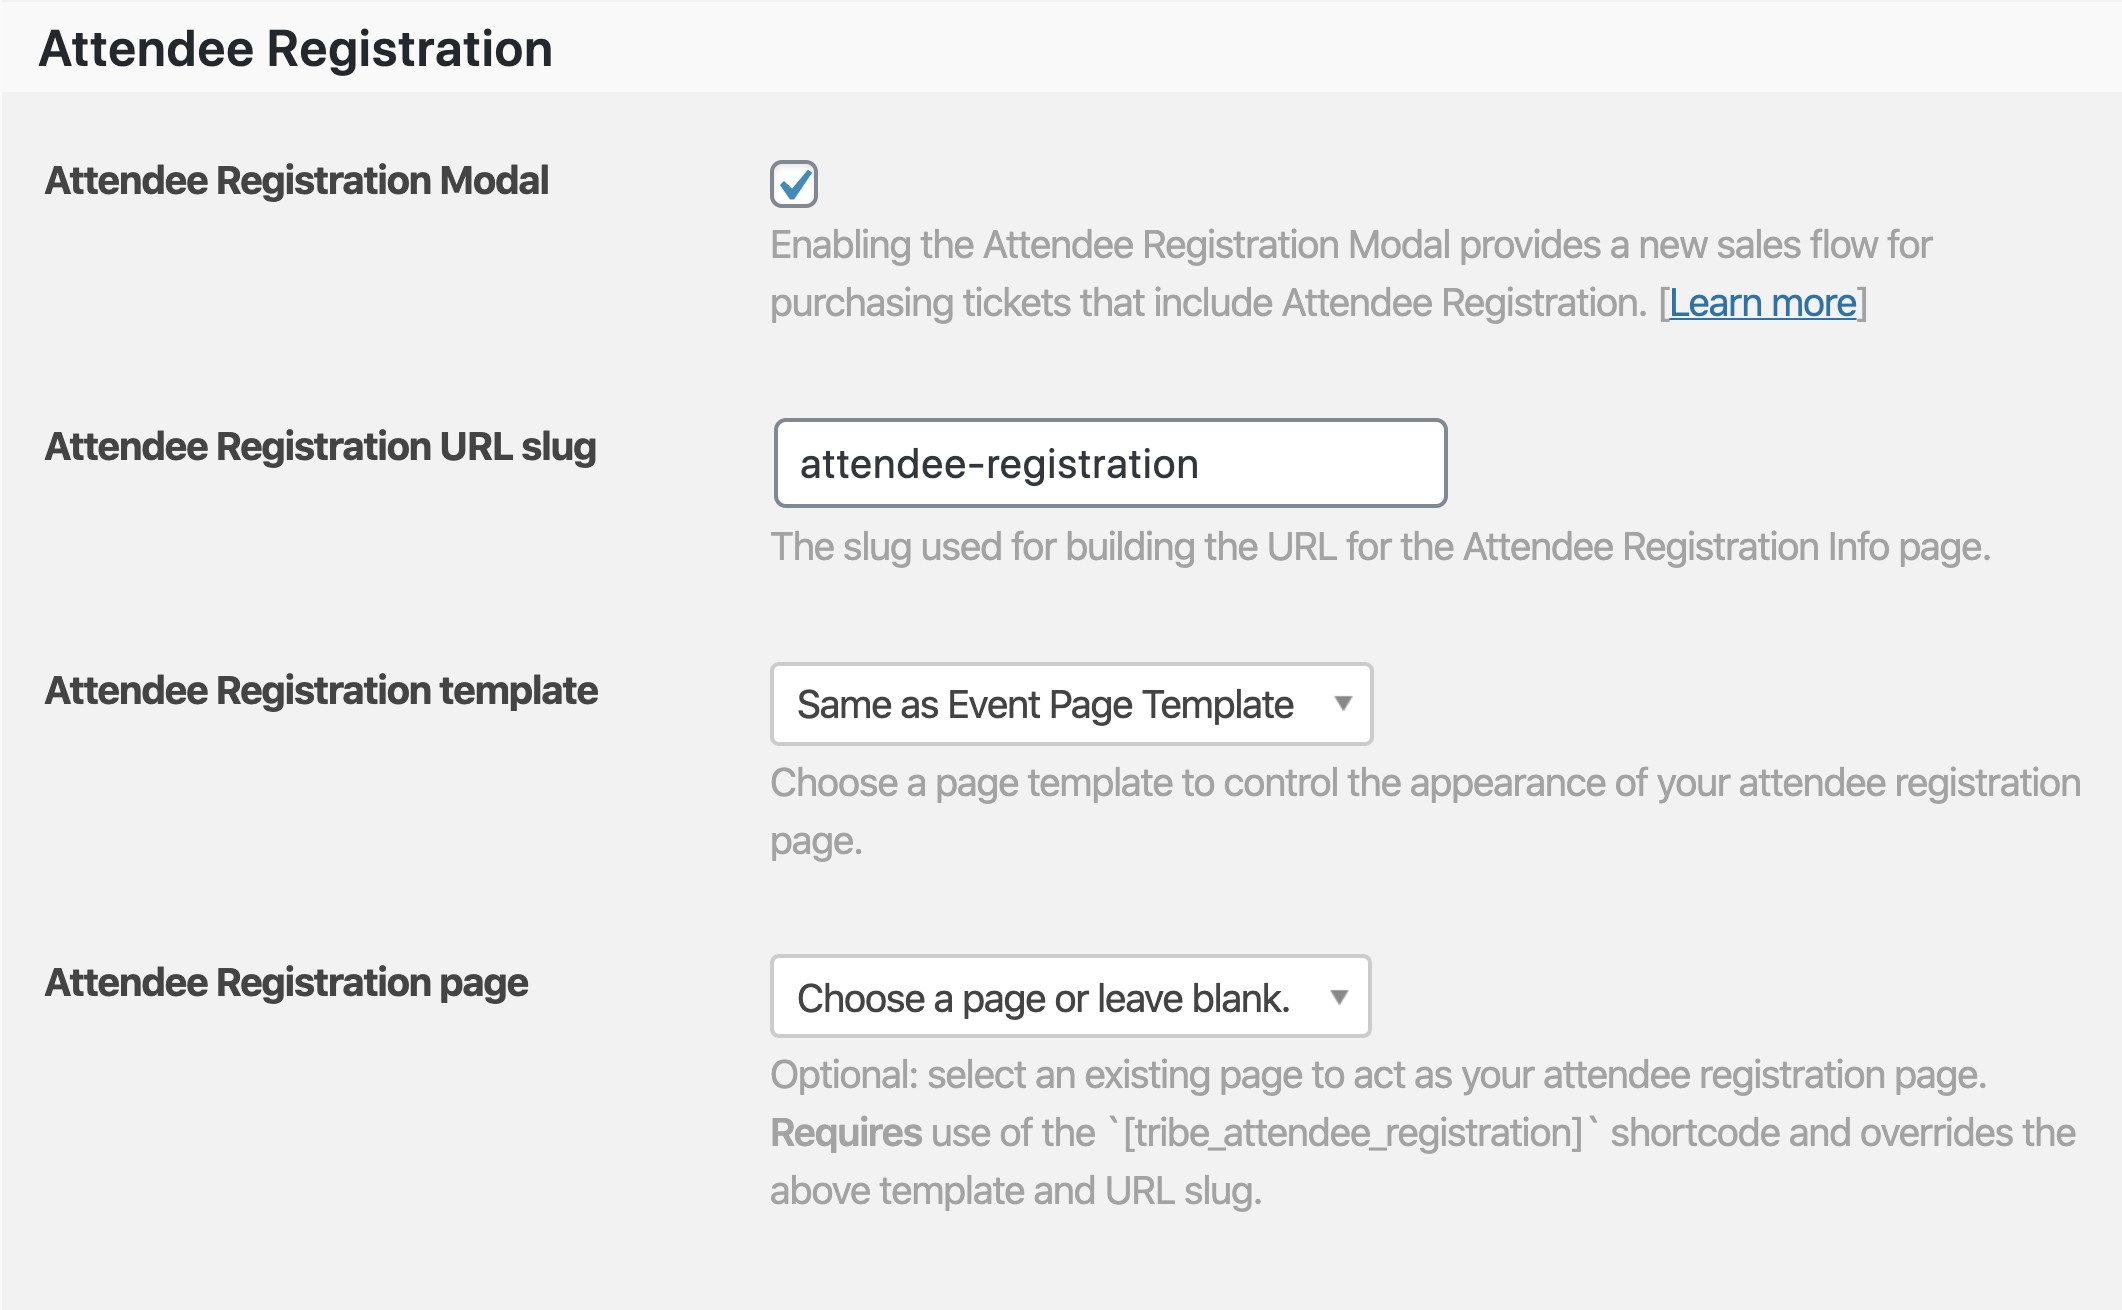 Attendee Registration settings and options